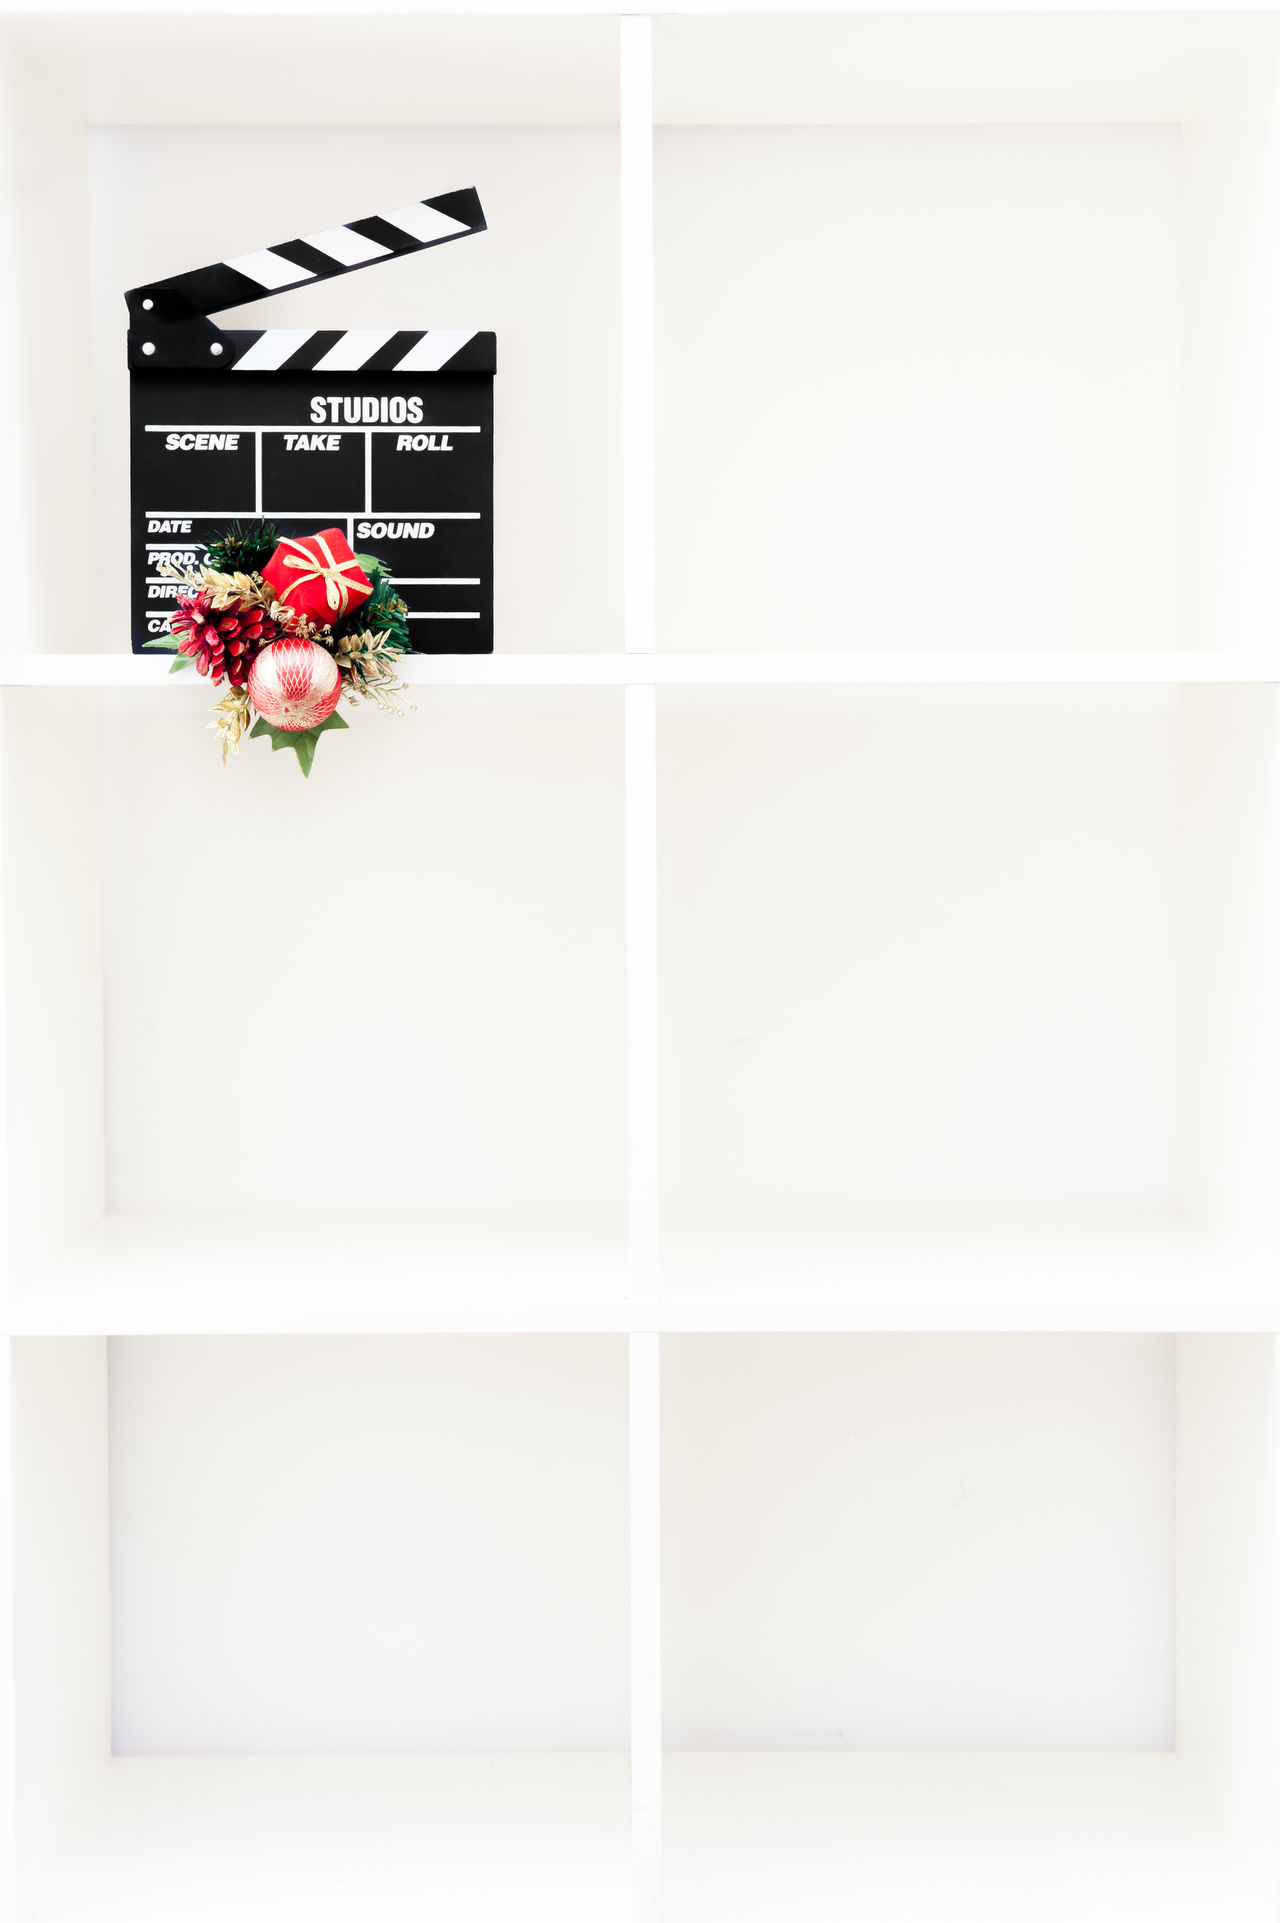 Christmas movie symbol Architecture Christmas Cinema Clapper Clapper Board Clapperboard Copy Space Film Holidays Home Showcase Interior Modern MOVIE No People Red Studio Shot Symbol White Color Winter